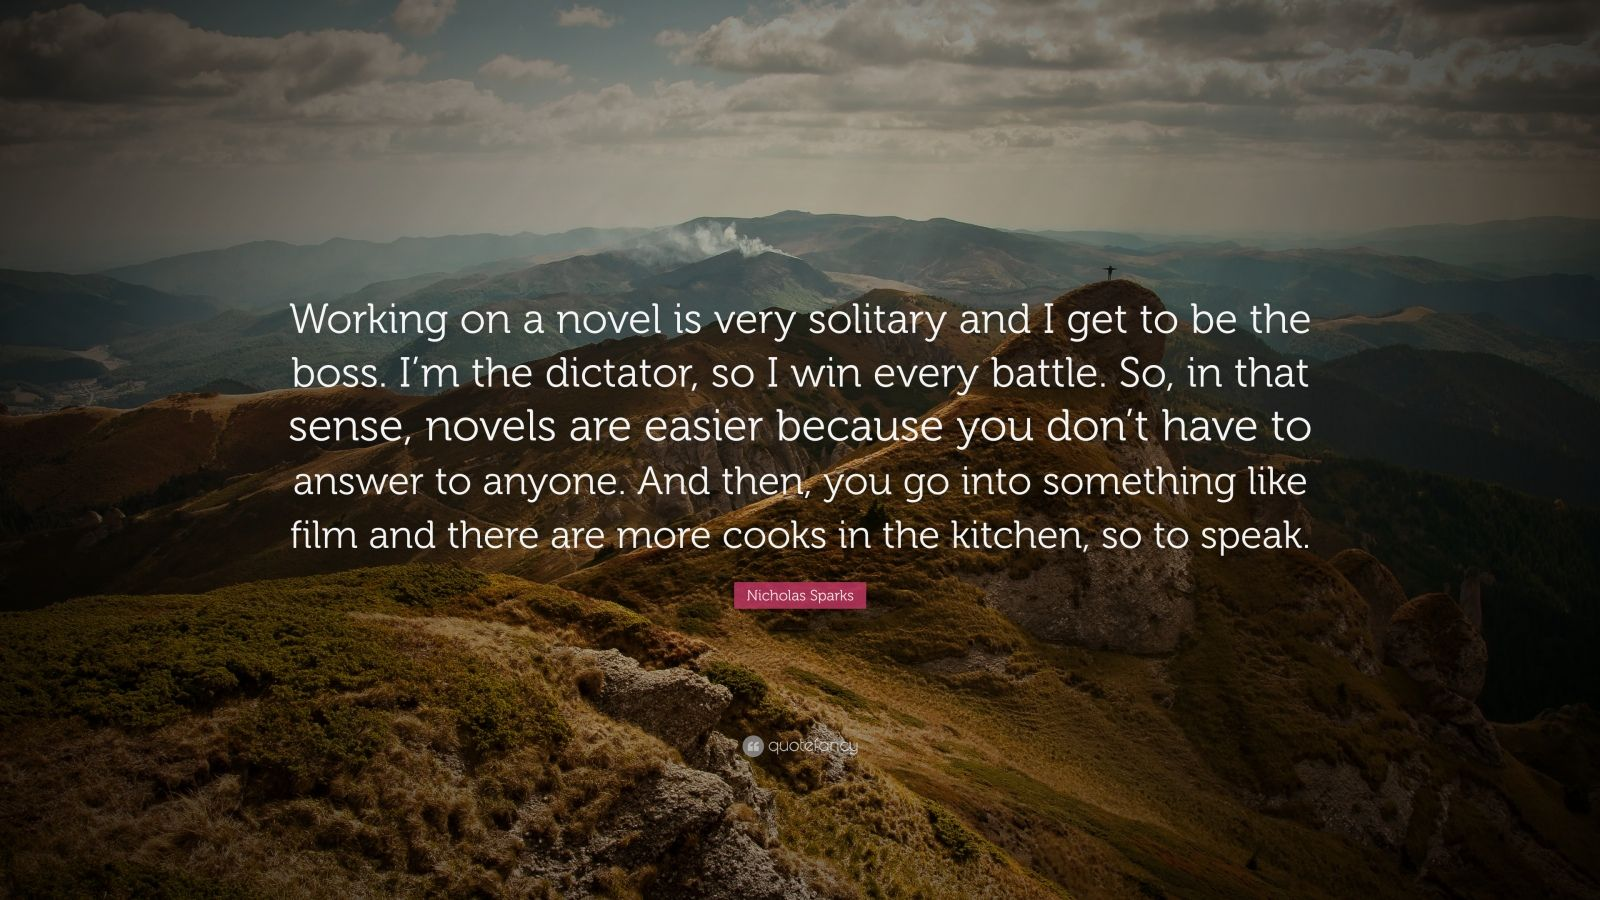 "Nicholas Sparks Quote: ""Working on a novel is very solitary and I get to be the boss. I'm the dictator, so I win every battle. So, in that sense, novels are easier because you don't have to answer to anyone. And then, you go into something like film and there are more cooks in the kitchen, so to speak."""